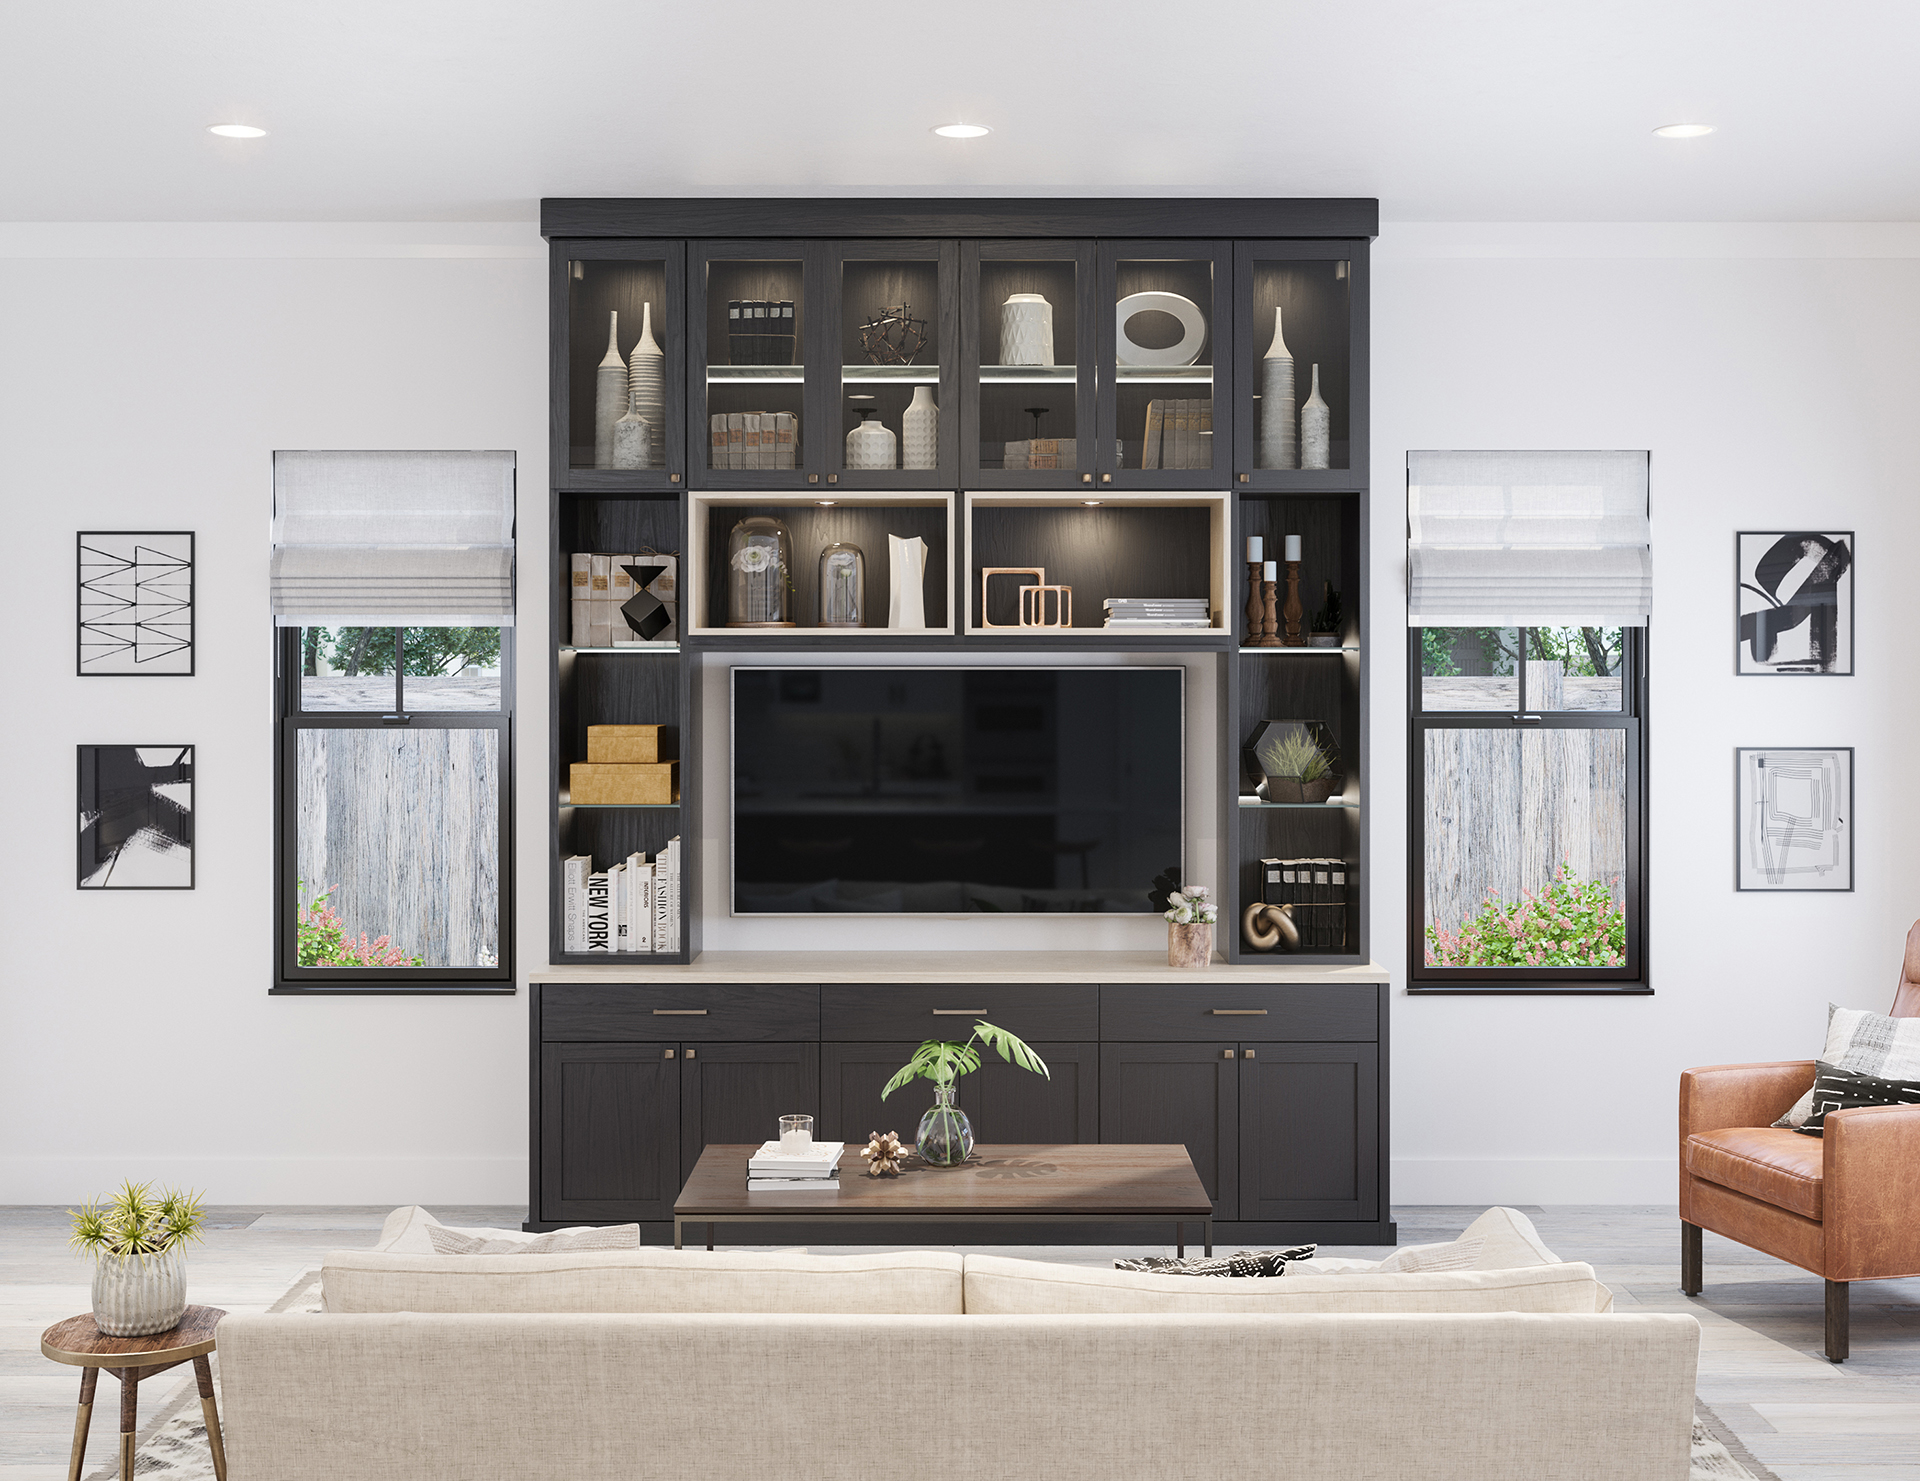 small living room entertainment center ideas images of modern furniture built in centers media cabinets california closets millstone